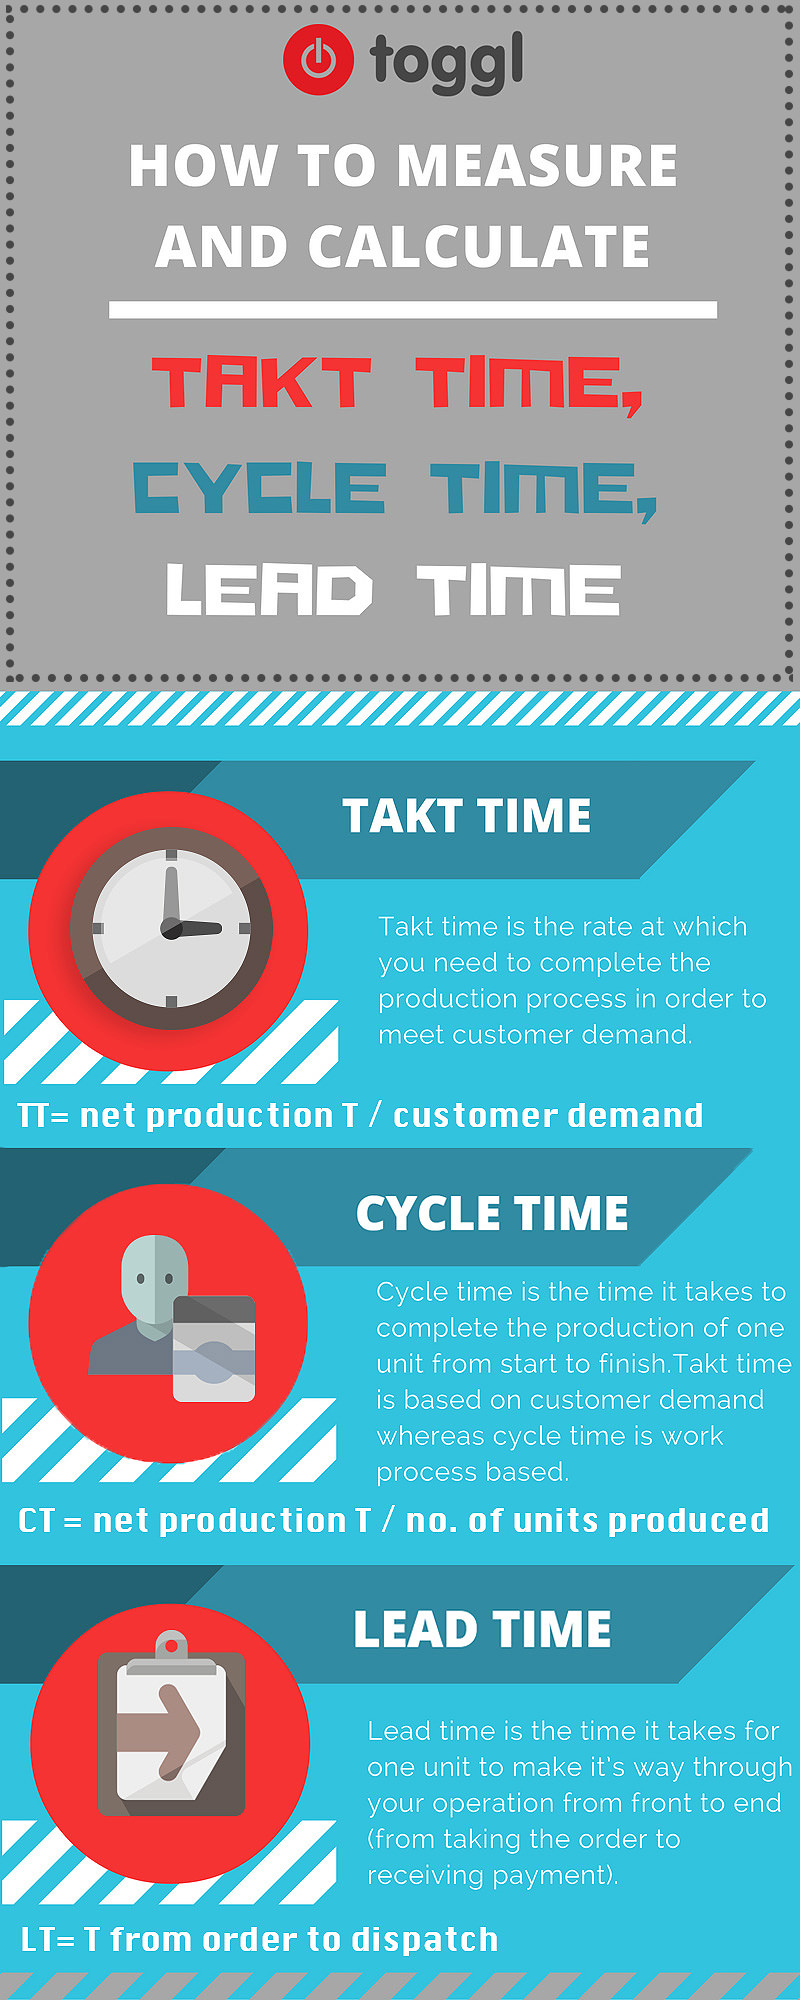 Takt Time Vs Cycle Time Vs Lead Time In 2020 Cycle Lead Time Organizational Goals